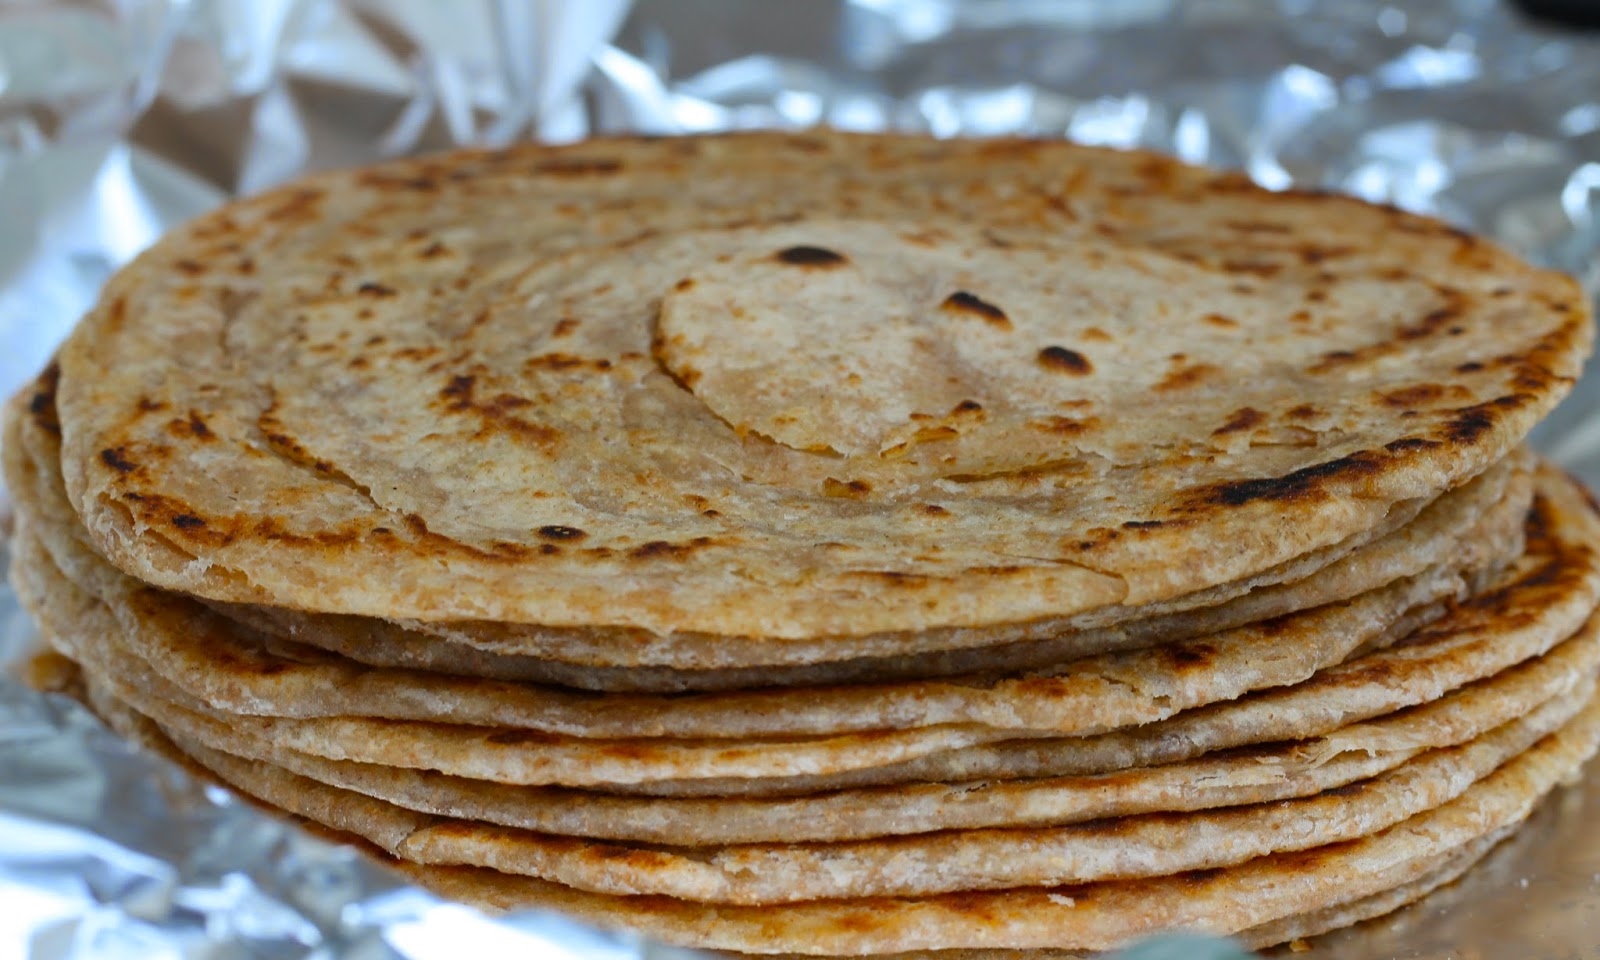 Stack of freshly-made parathas ready to be eaten